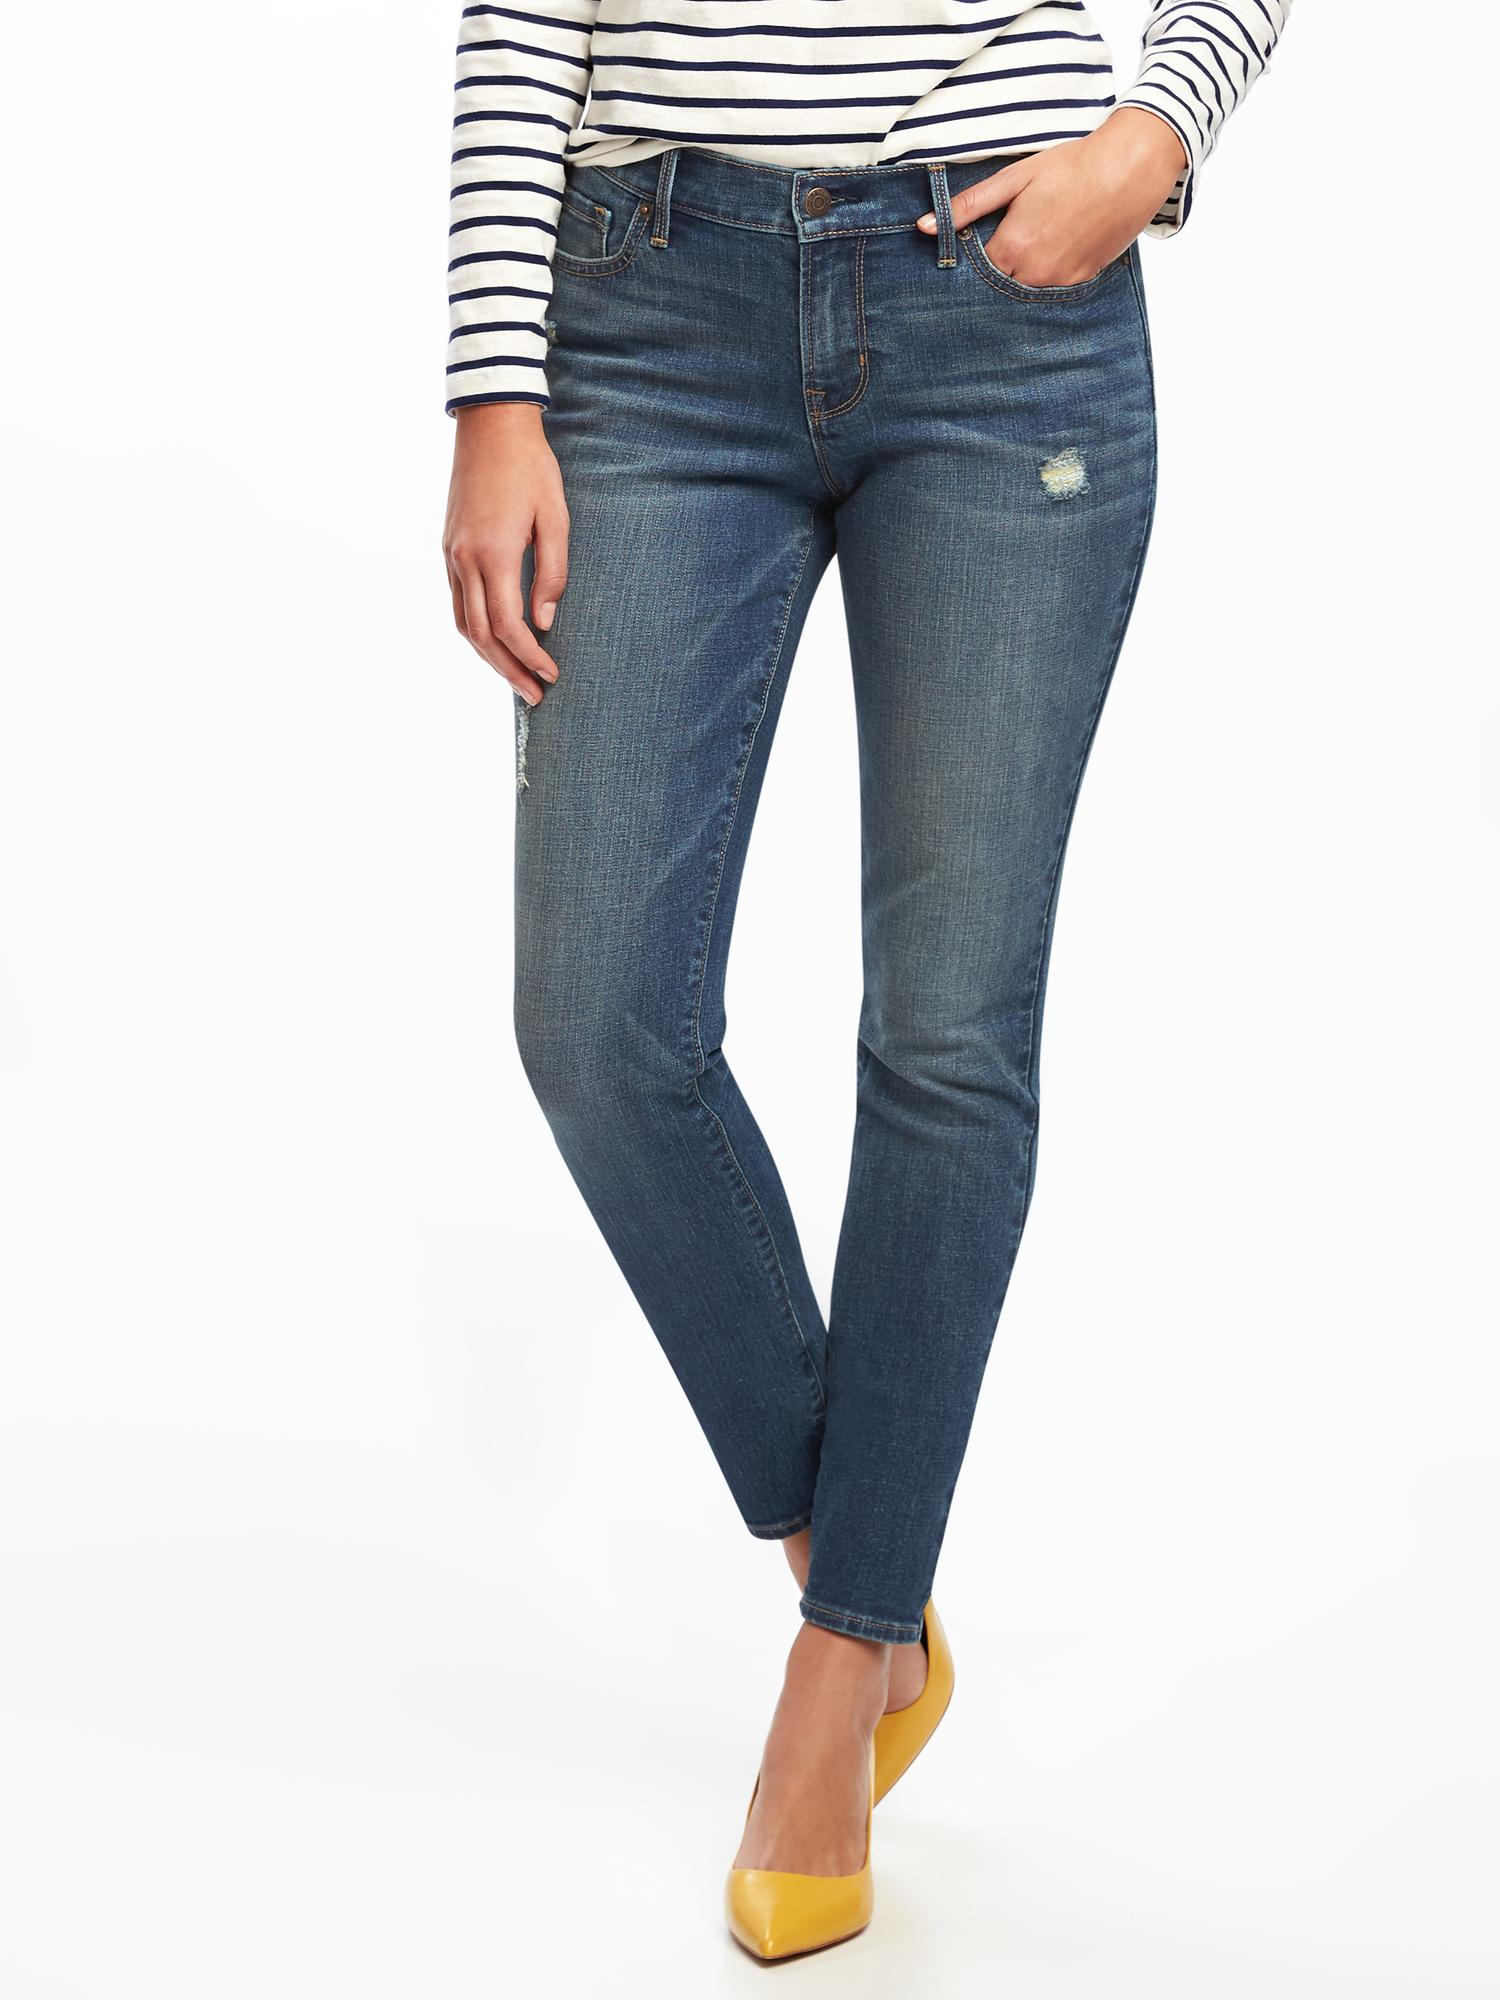 92481306aa9a Mid-Rise Curvy Skinny Jeans for Women